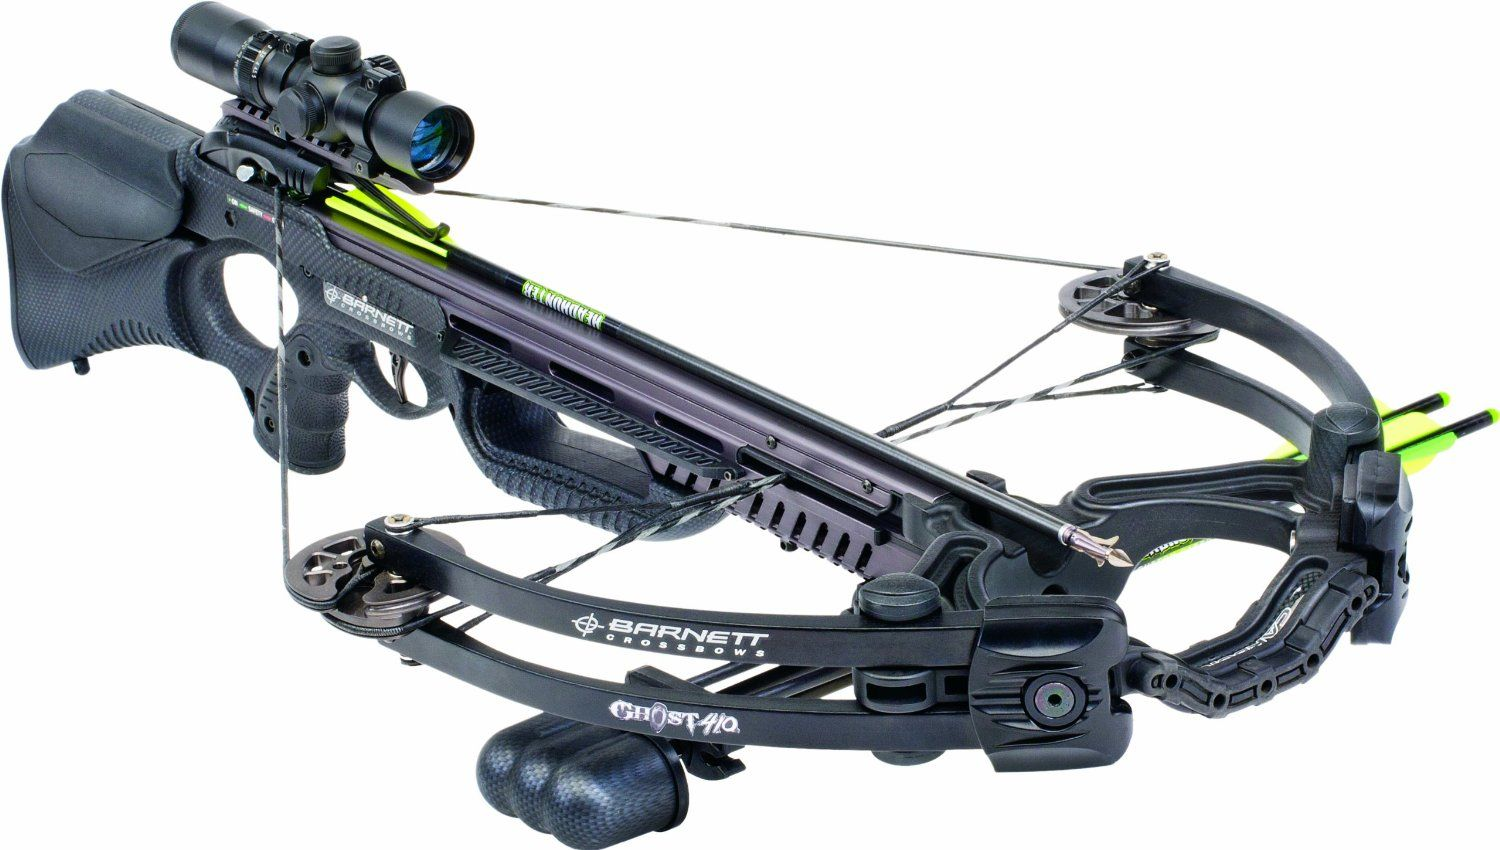 Amazon.com: Barnett Ghost 410 CRT Crossbow Package: Sports & Outdoors